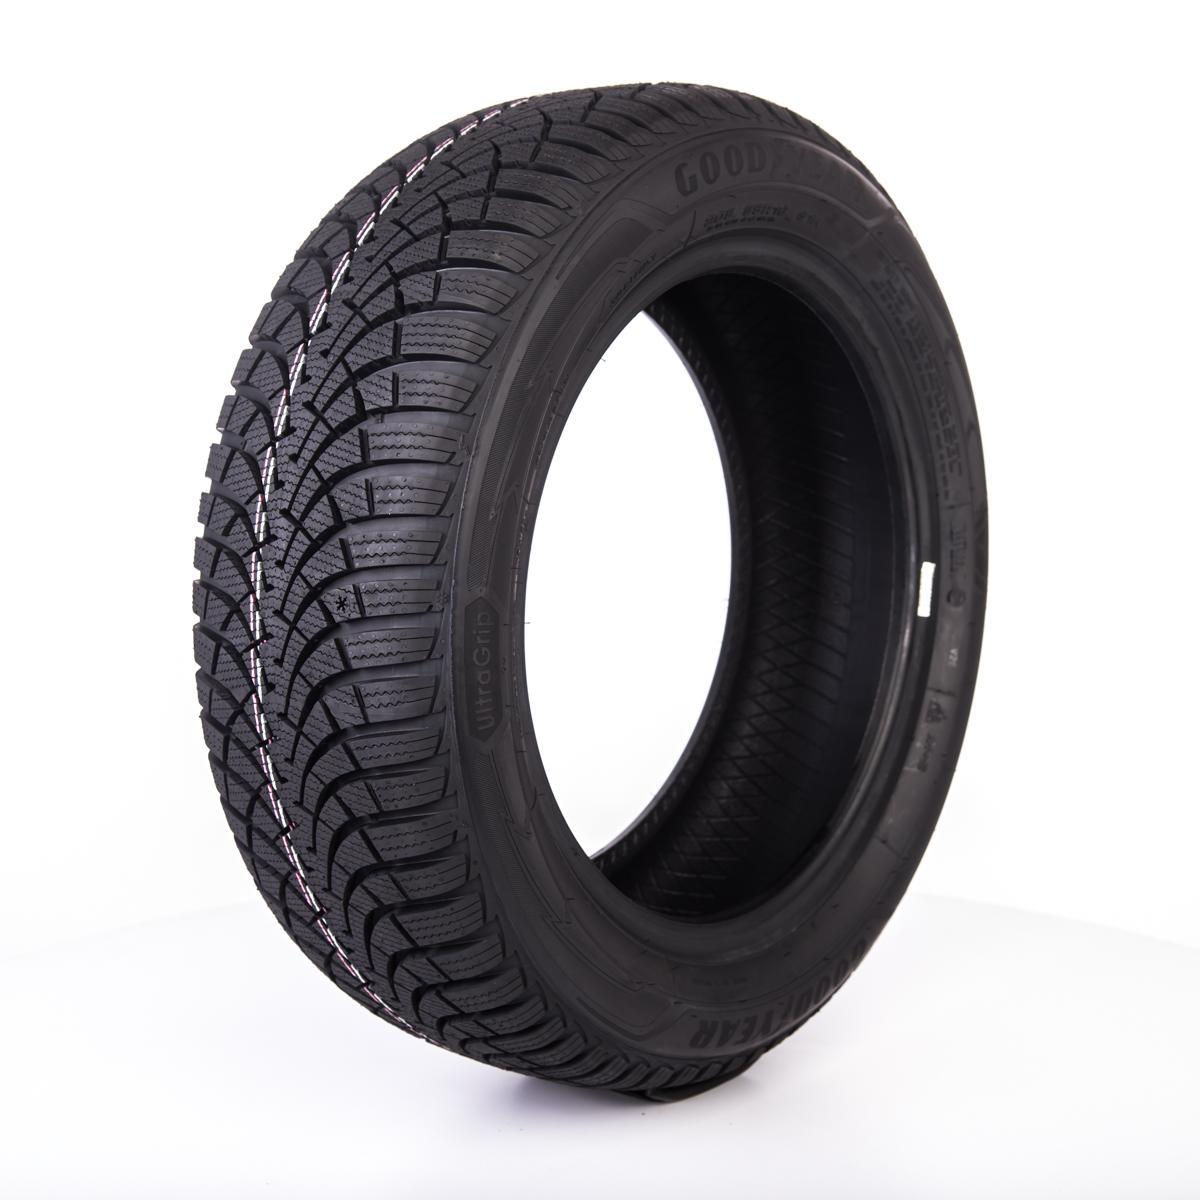 Goodyear, ULTRAGRIP 9 Vinter 72529